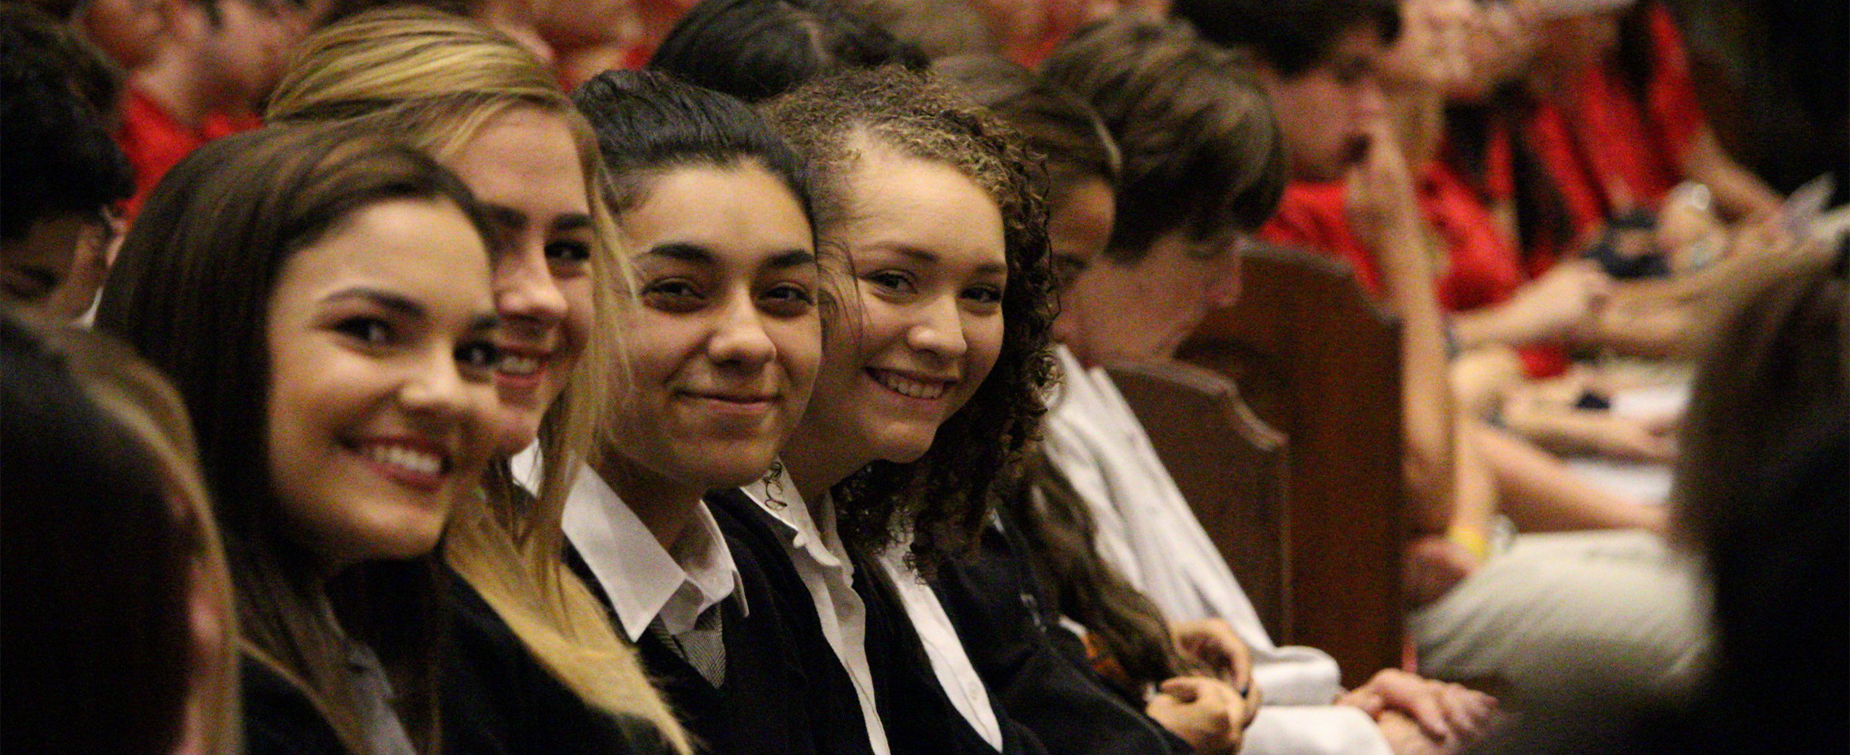 Students in chapel